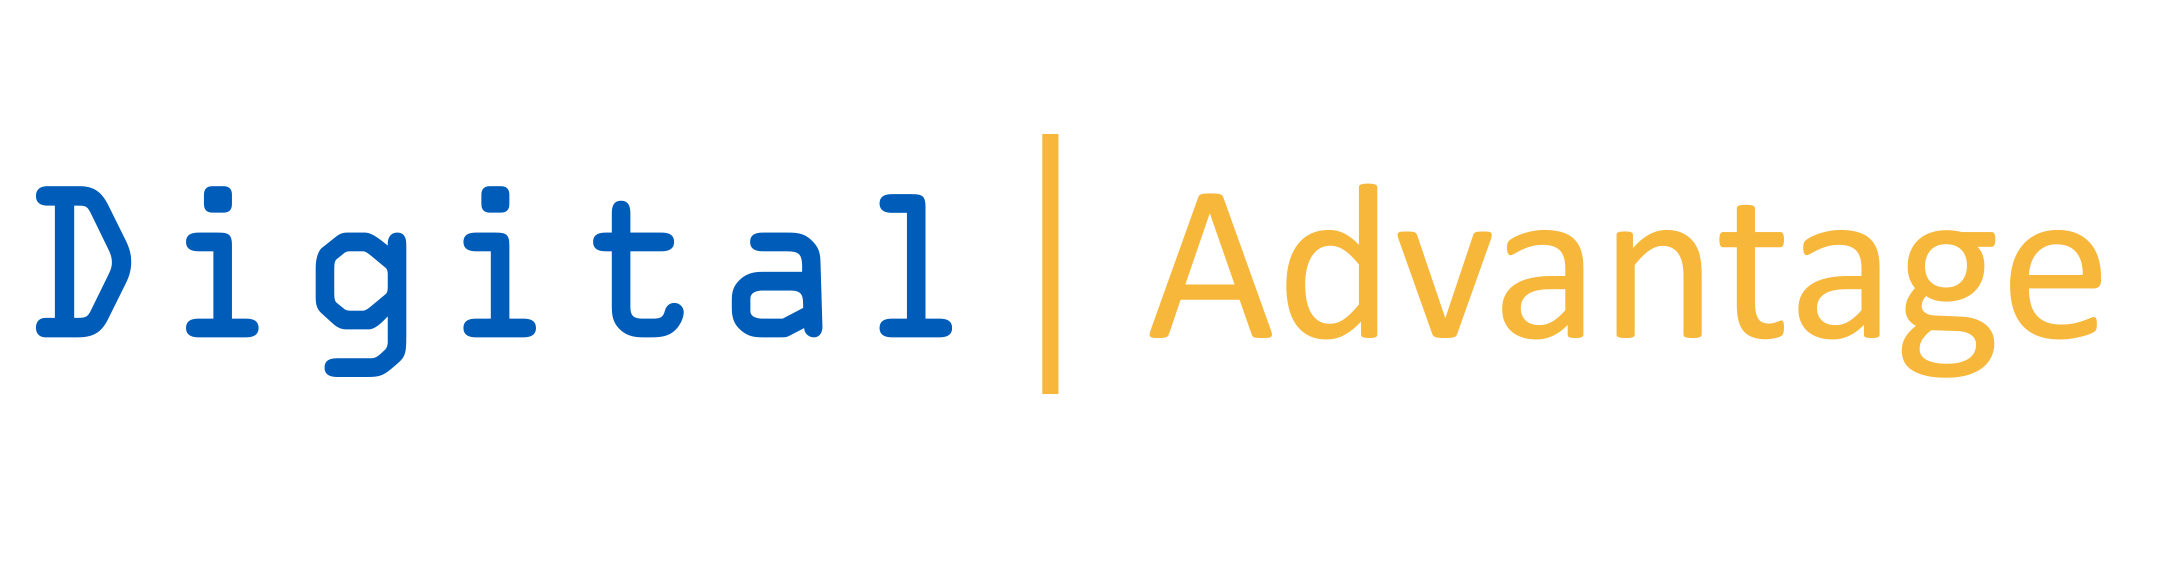 Digital Advantage logo (1).png